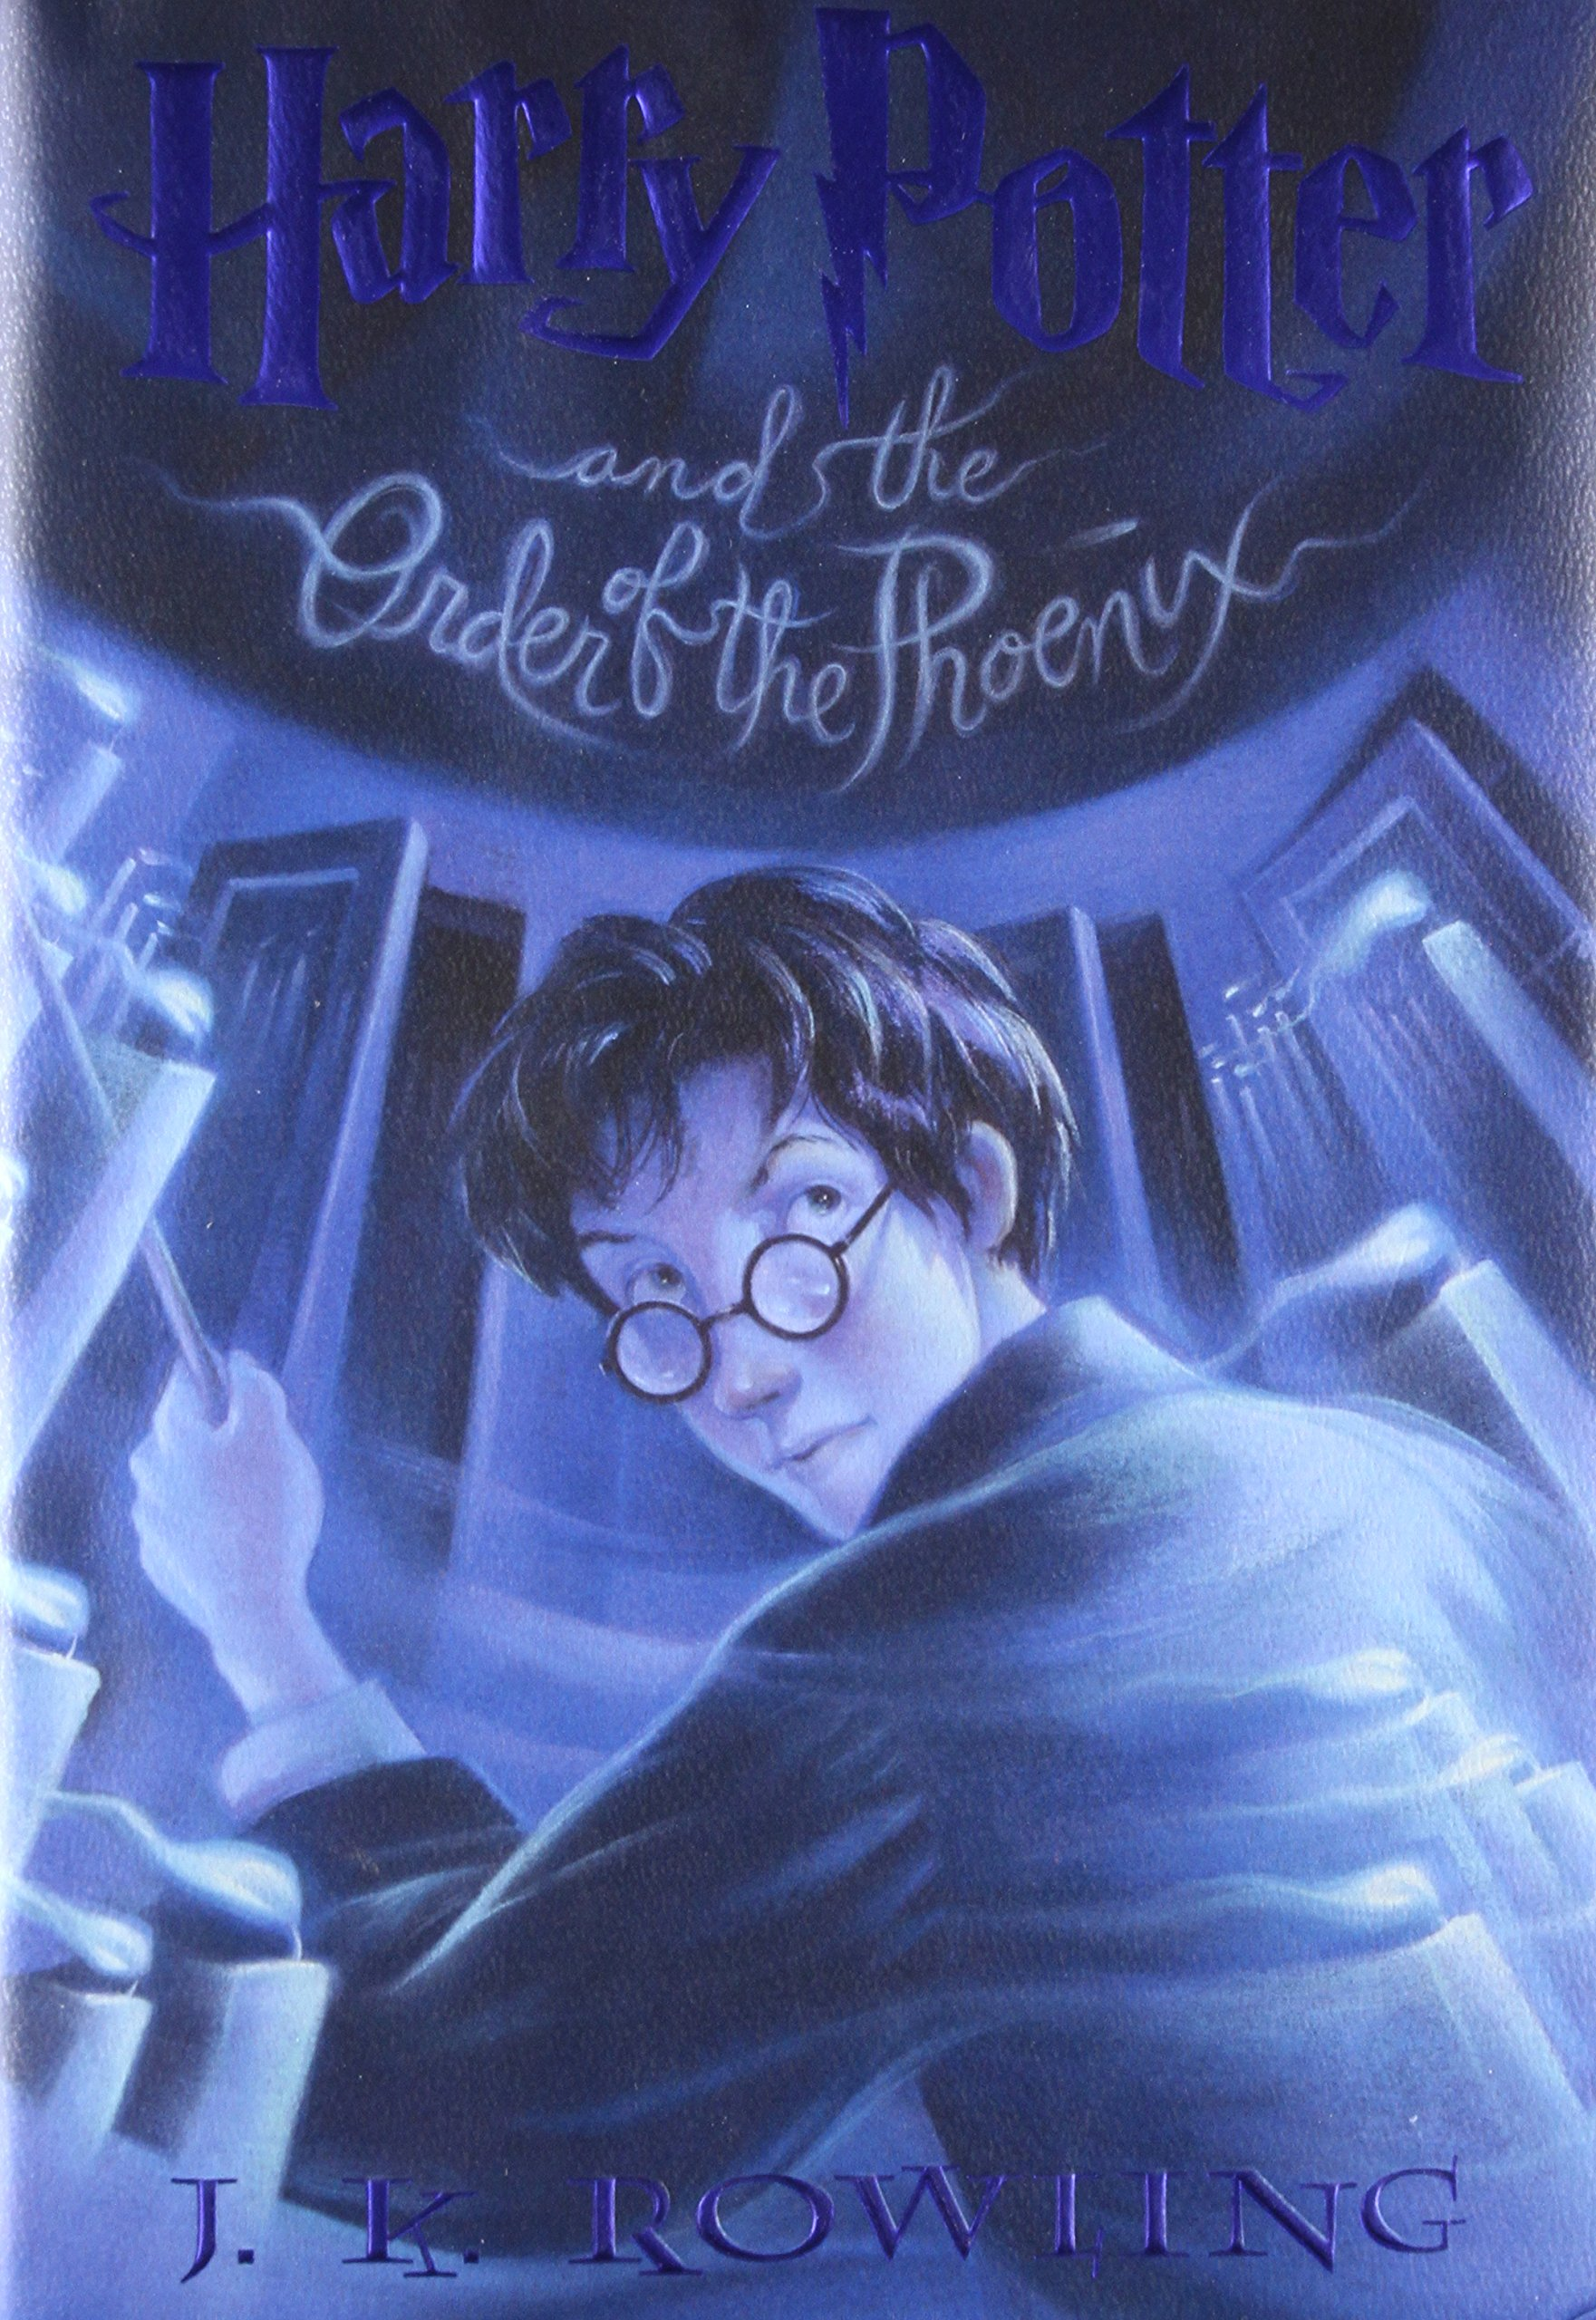 Harry Potter and the Order of the Phoenix (Book 5) by Arthur A. Levine Books (Image #1)